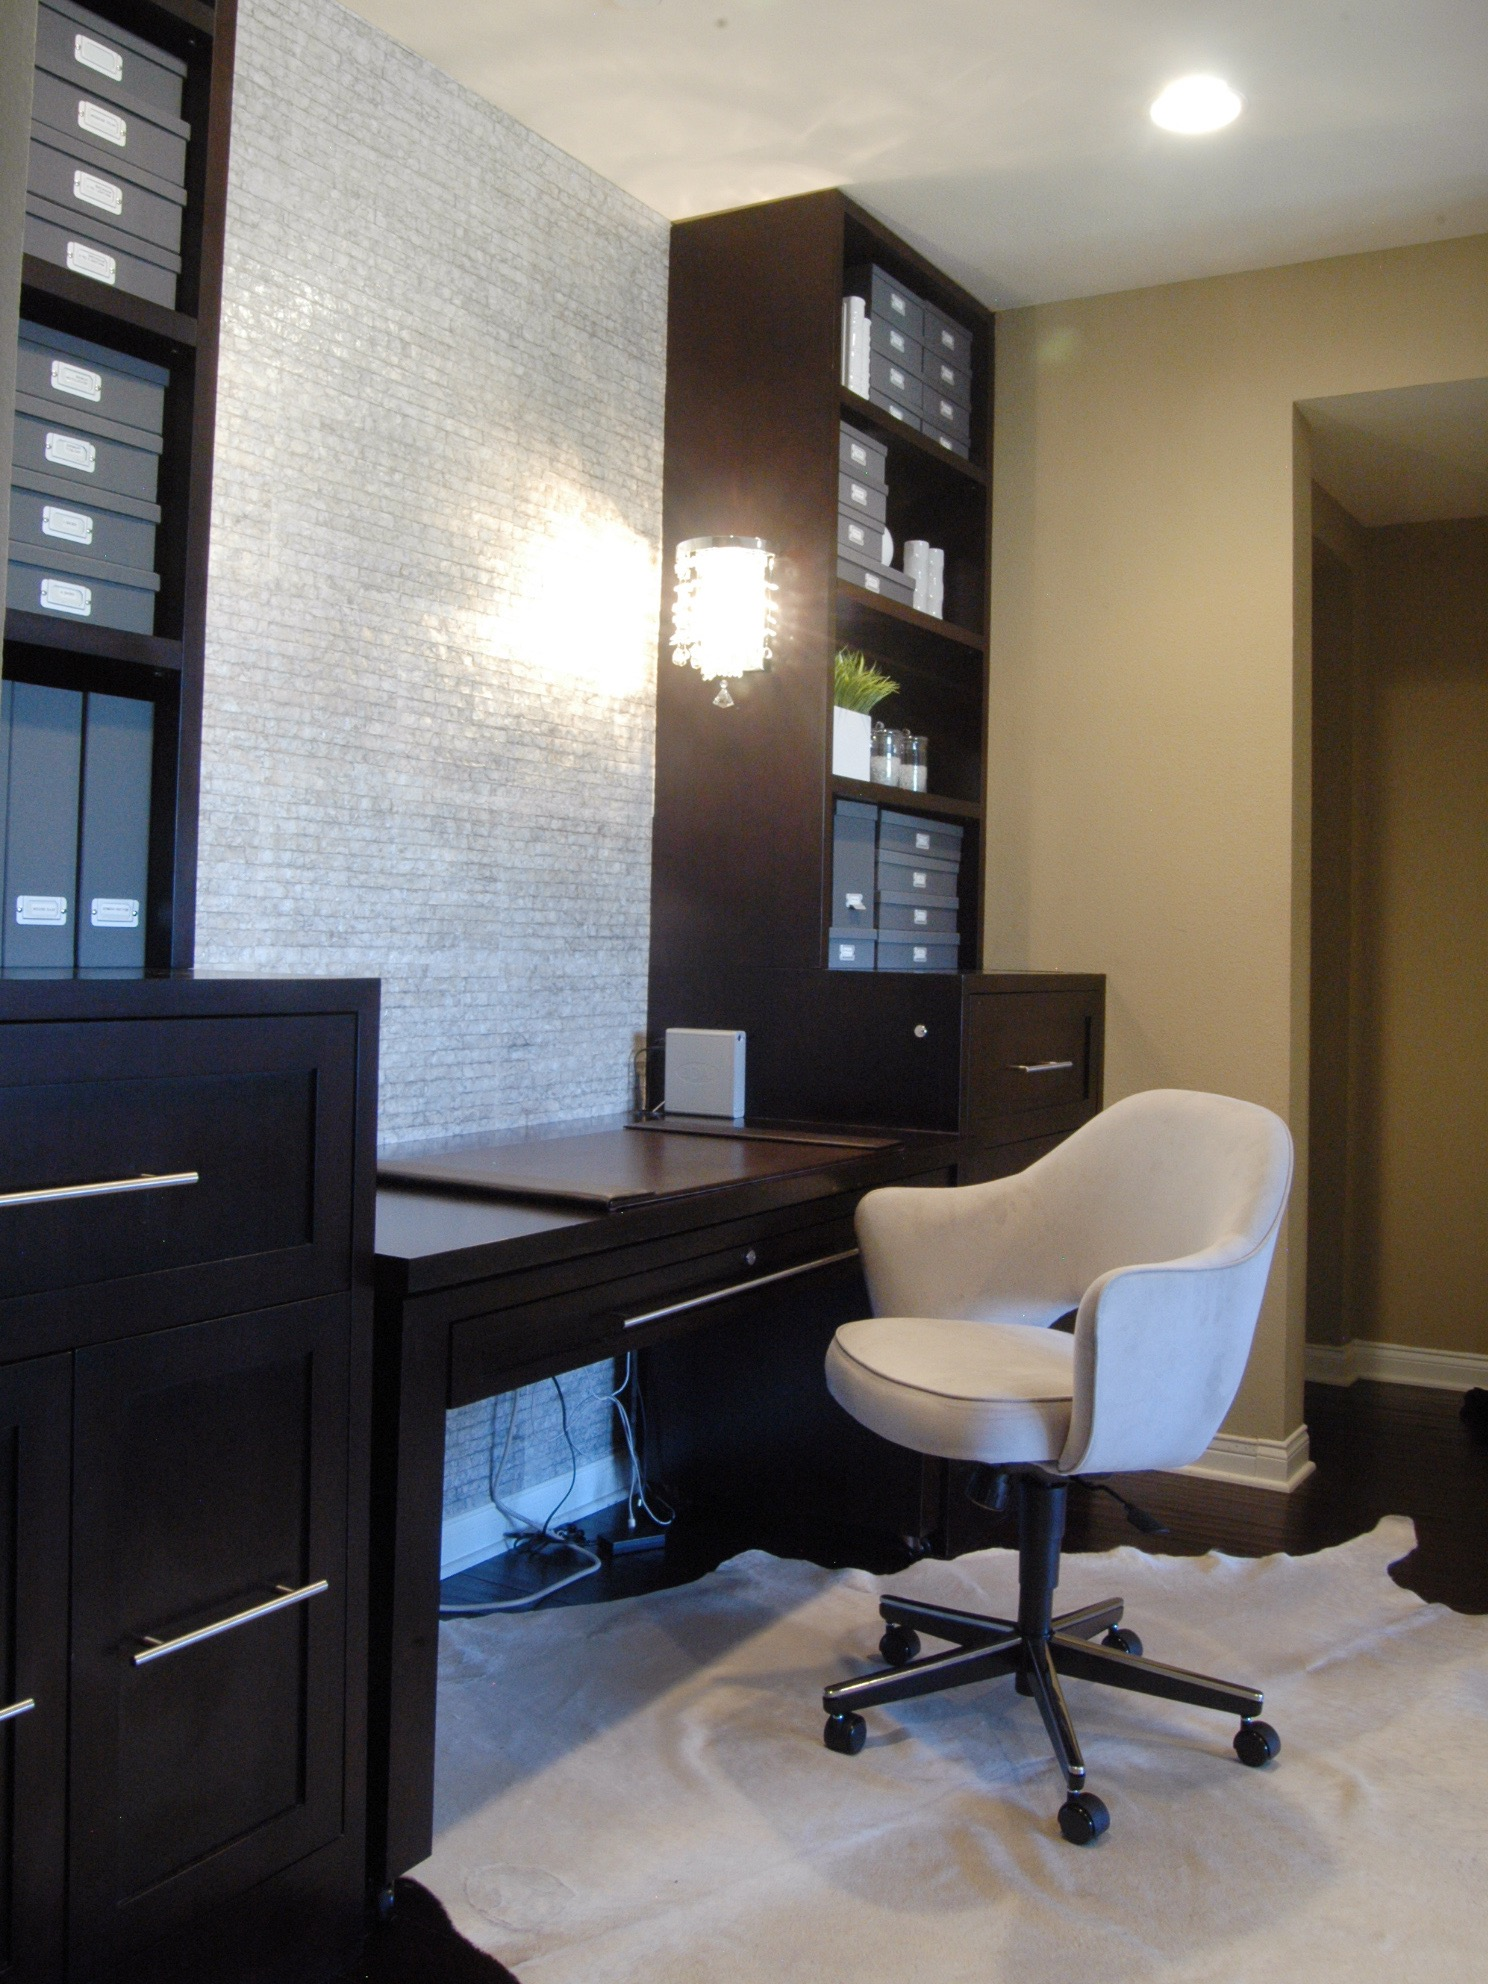 Black And White Home Office With Pearlized Tile Wall (View 2 of 50)